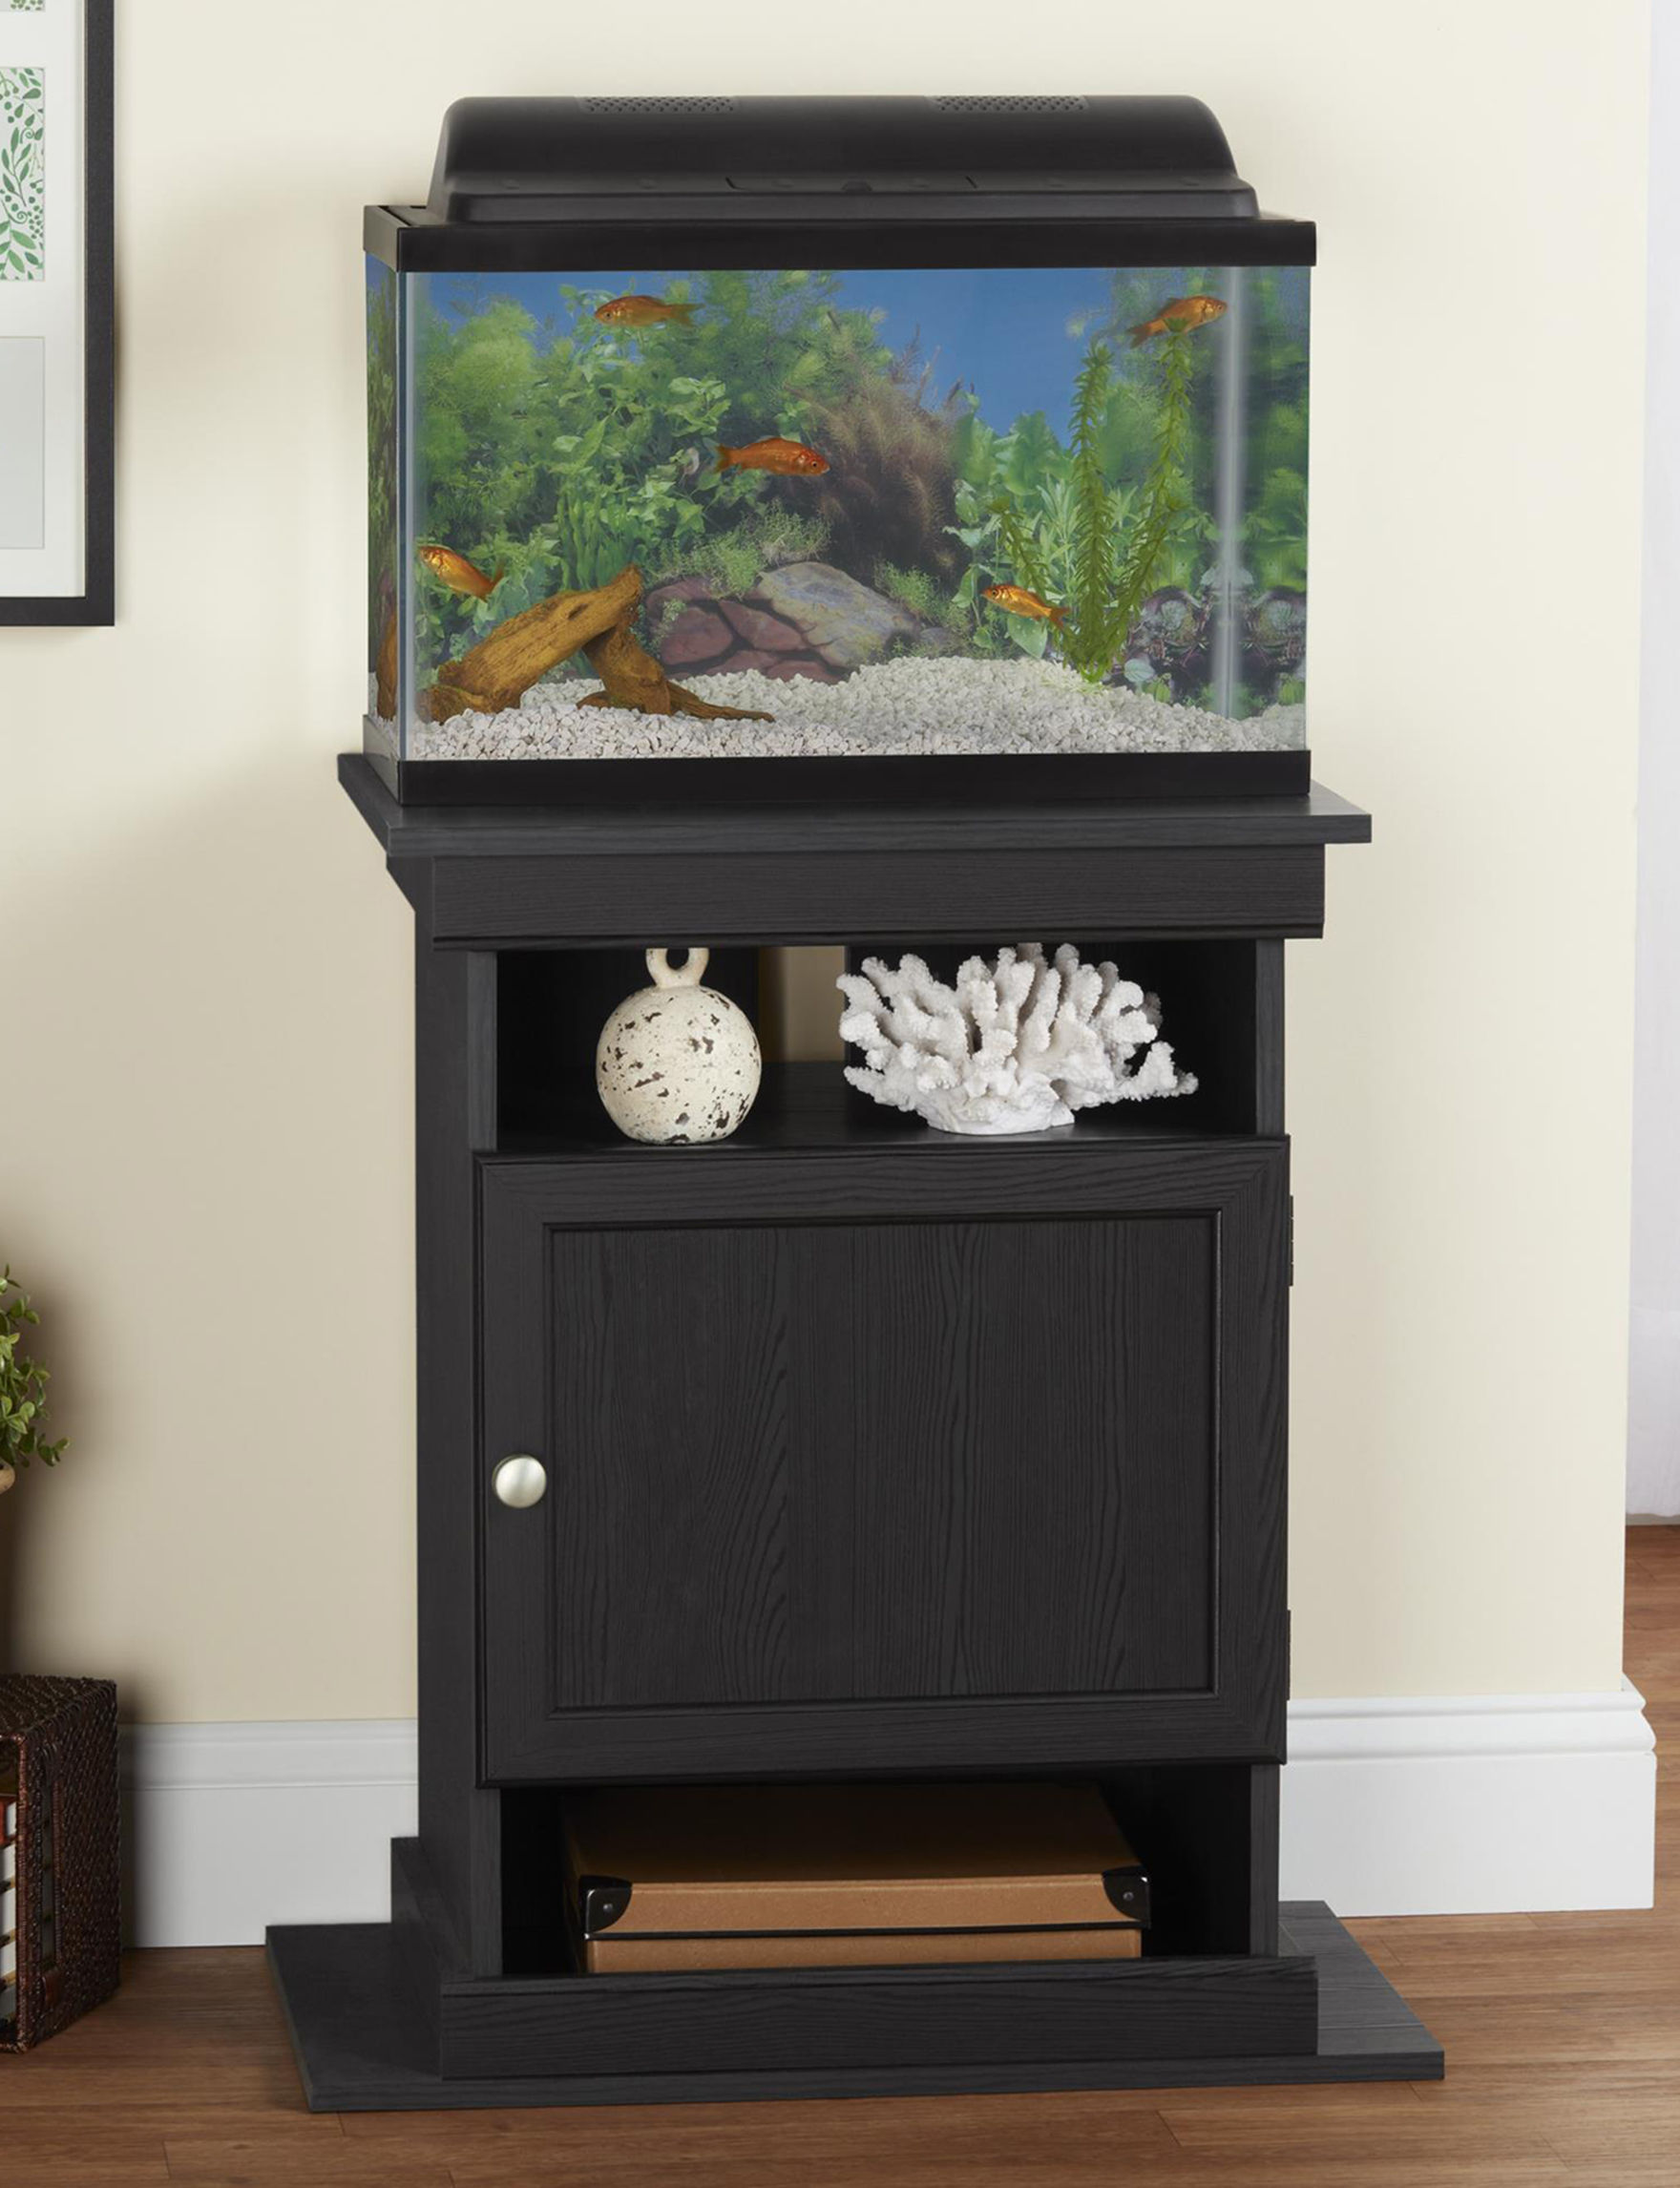 Ameriwood Black Home Accents Living Room Furniture